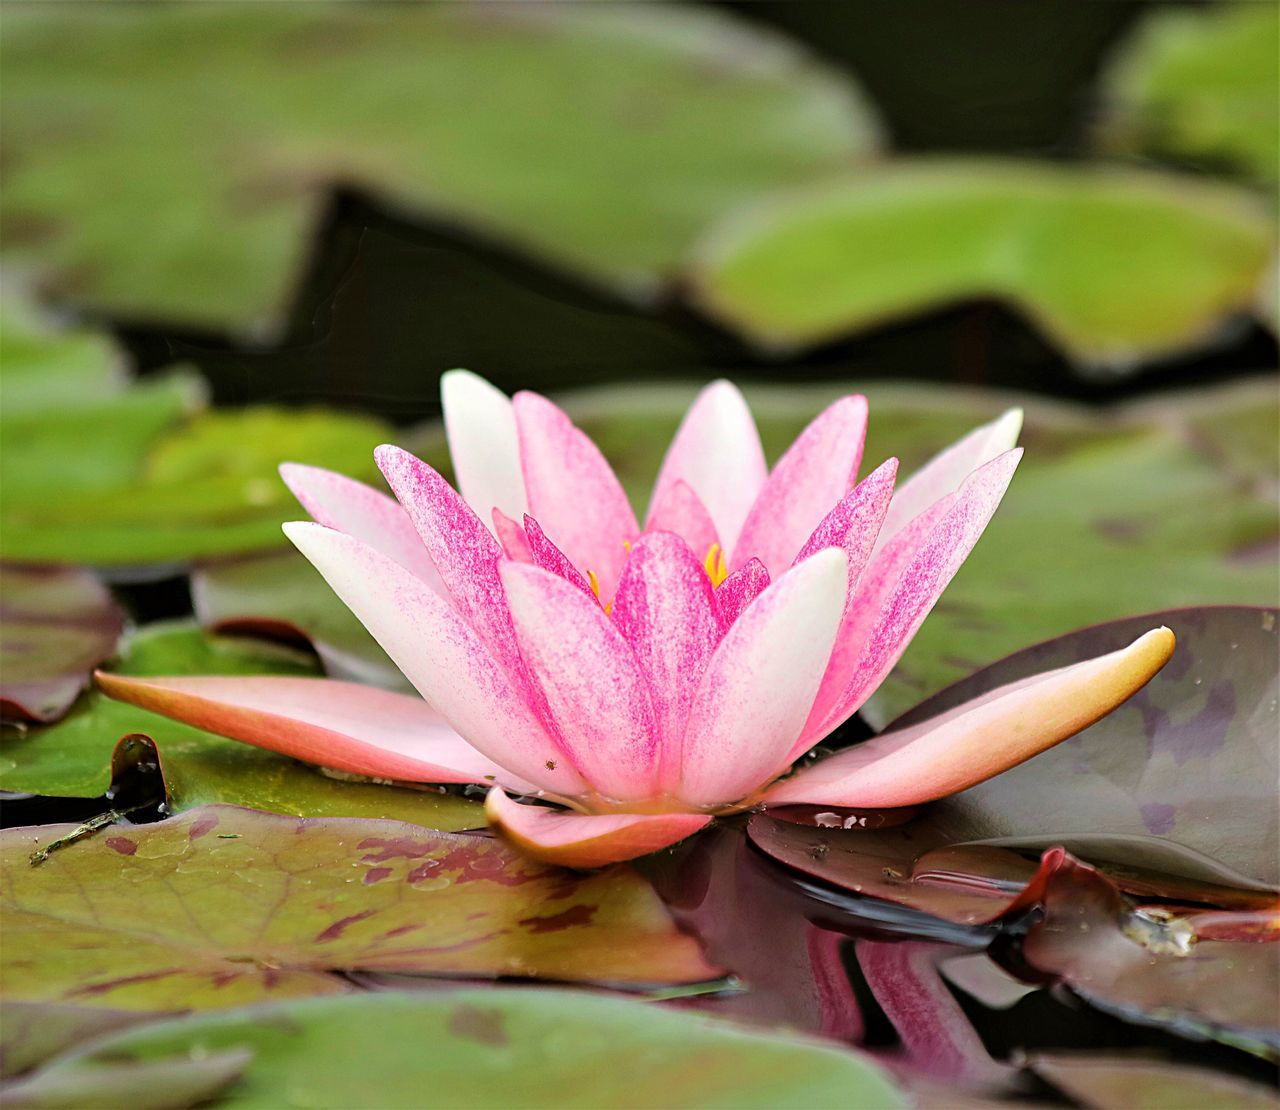 flower, beauty in nature, nature, lotus water lily, petal, water lily, growth, leaf, fragility, pink color, freshness, lotus, flower head, day, water, outdoors, plant, no people, close-up, floating on water, lily pad, lake